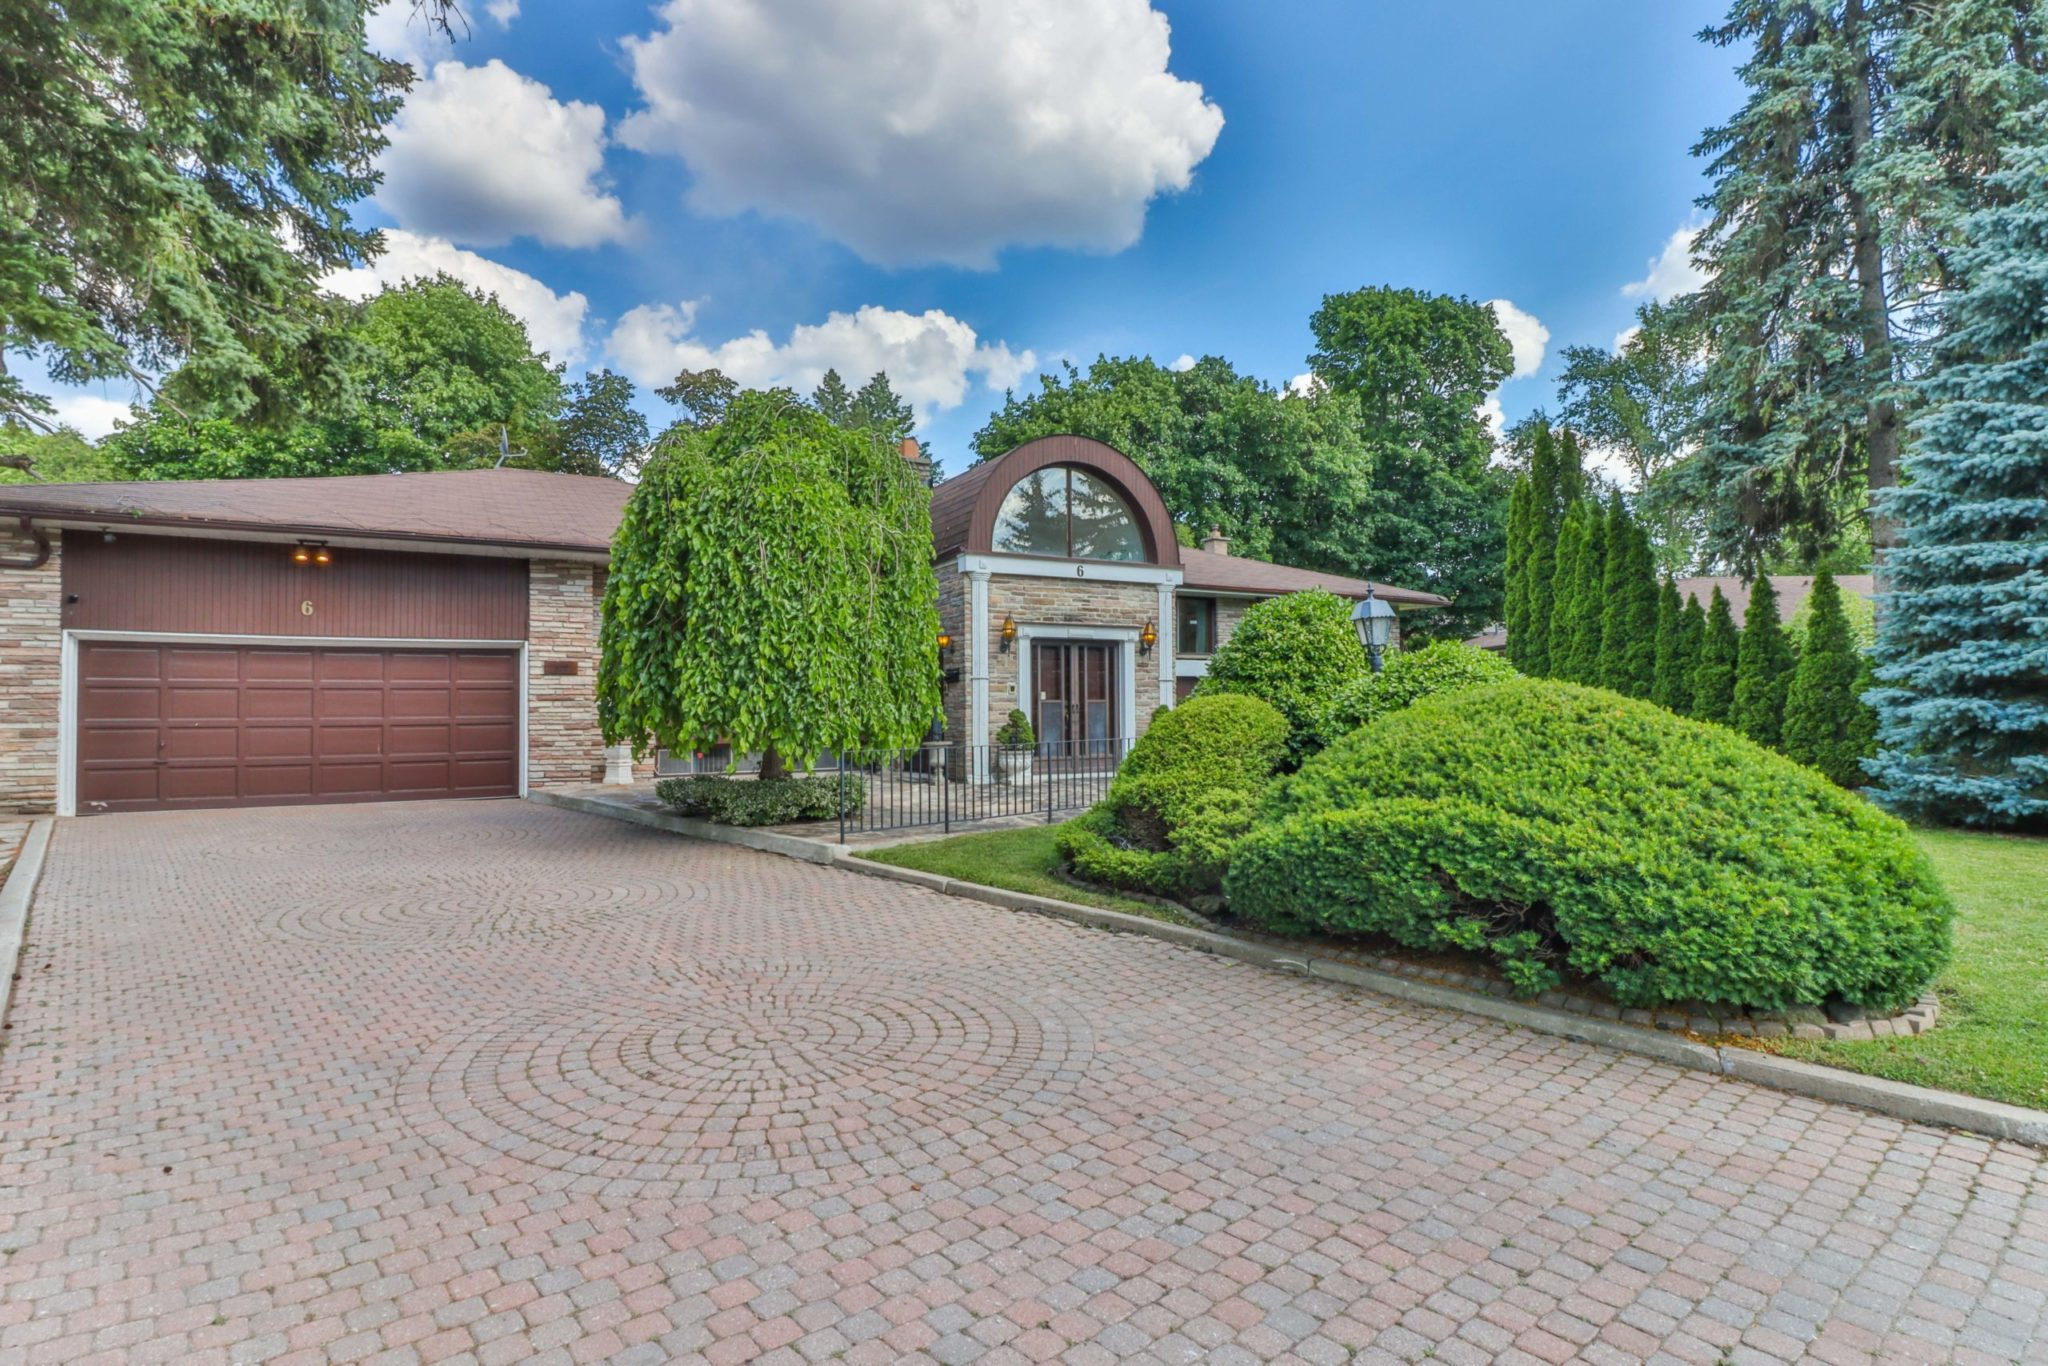 Large bungalow with 6-car driveway and huge front yard with trees.